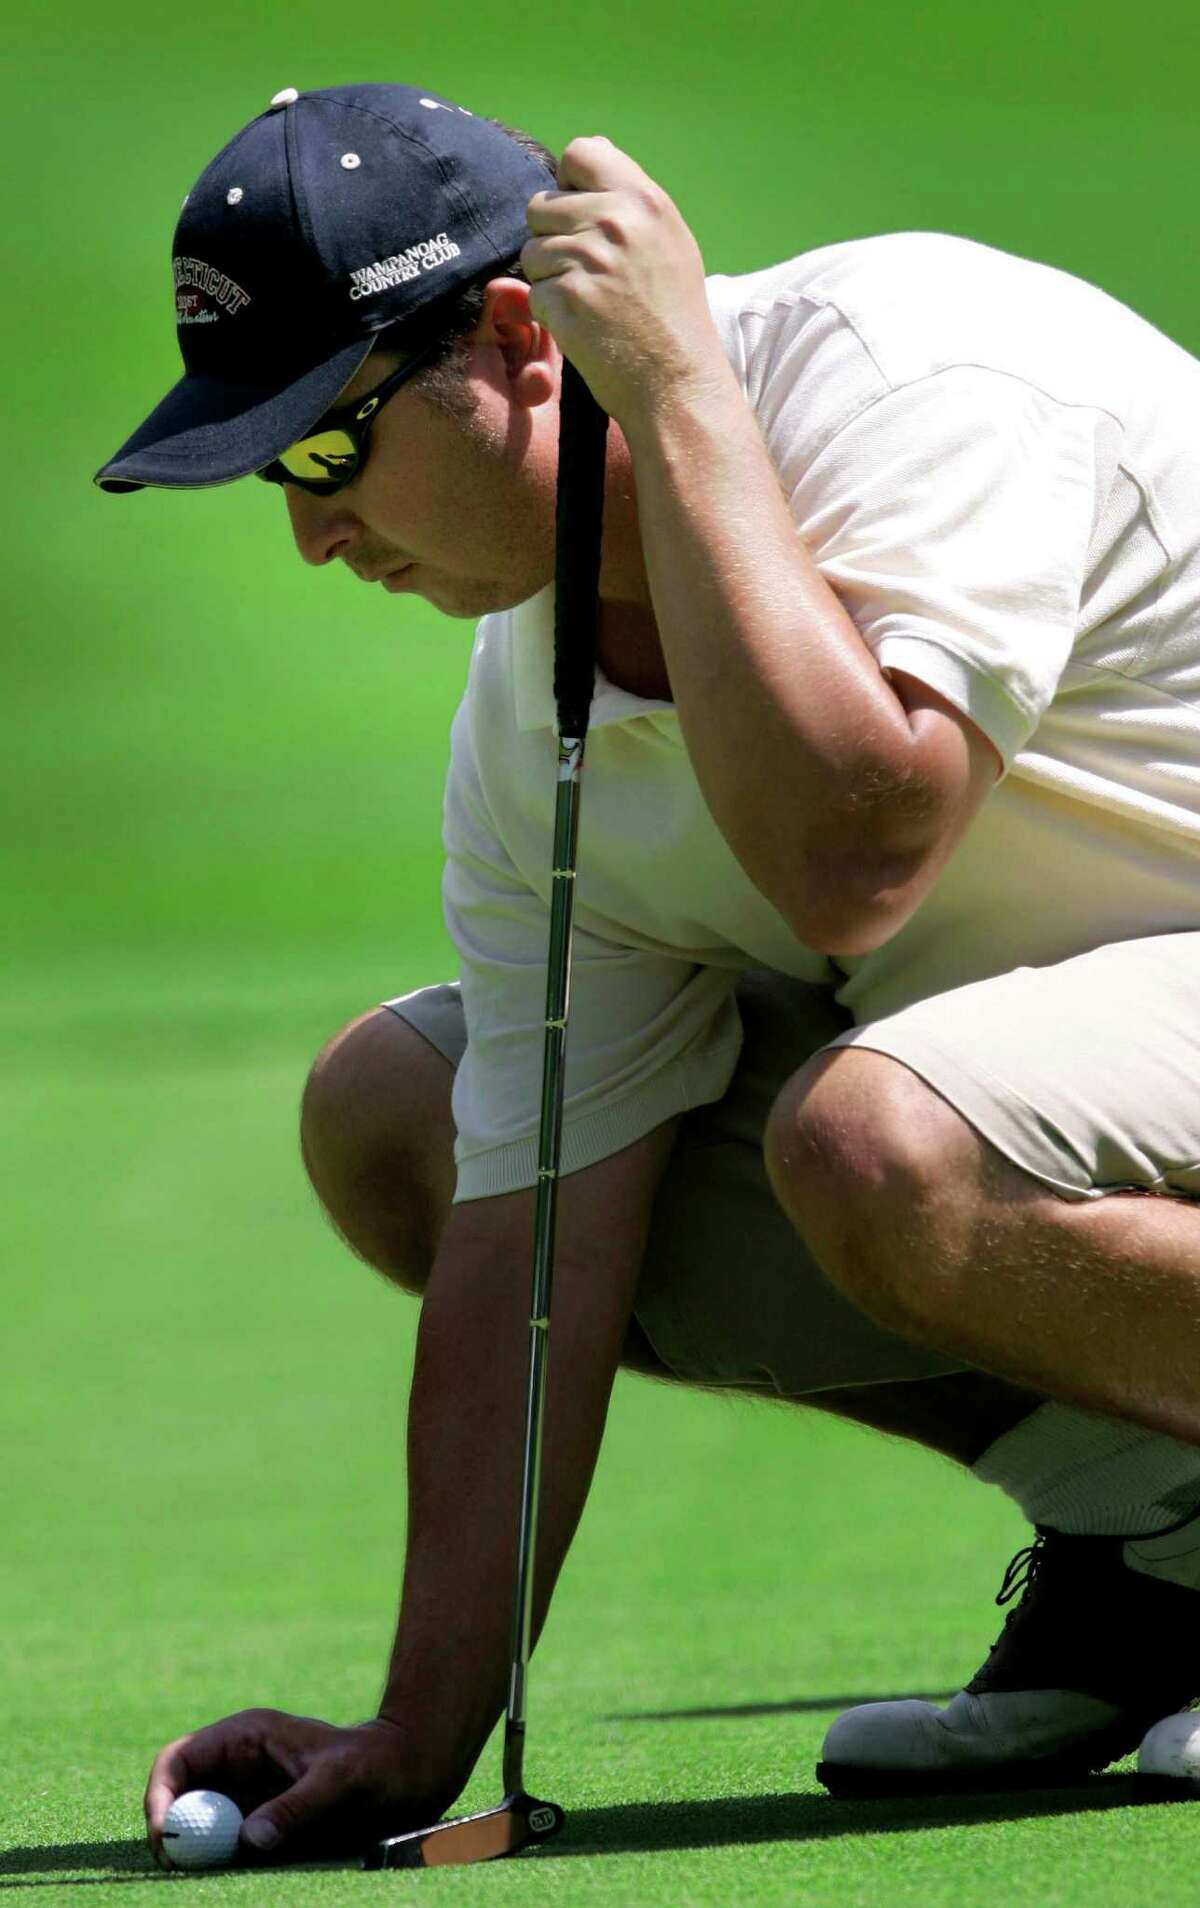 DANBURY CT. - JULY 20: Chet Hrostek places his ball on the fifth green during thechampionship round of the Danbury Amateur Tornament at Richter Park Sunday, July 20, 2003.